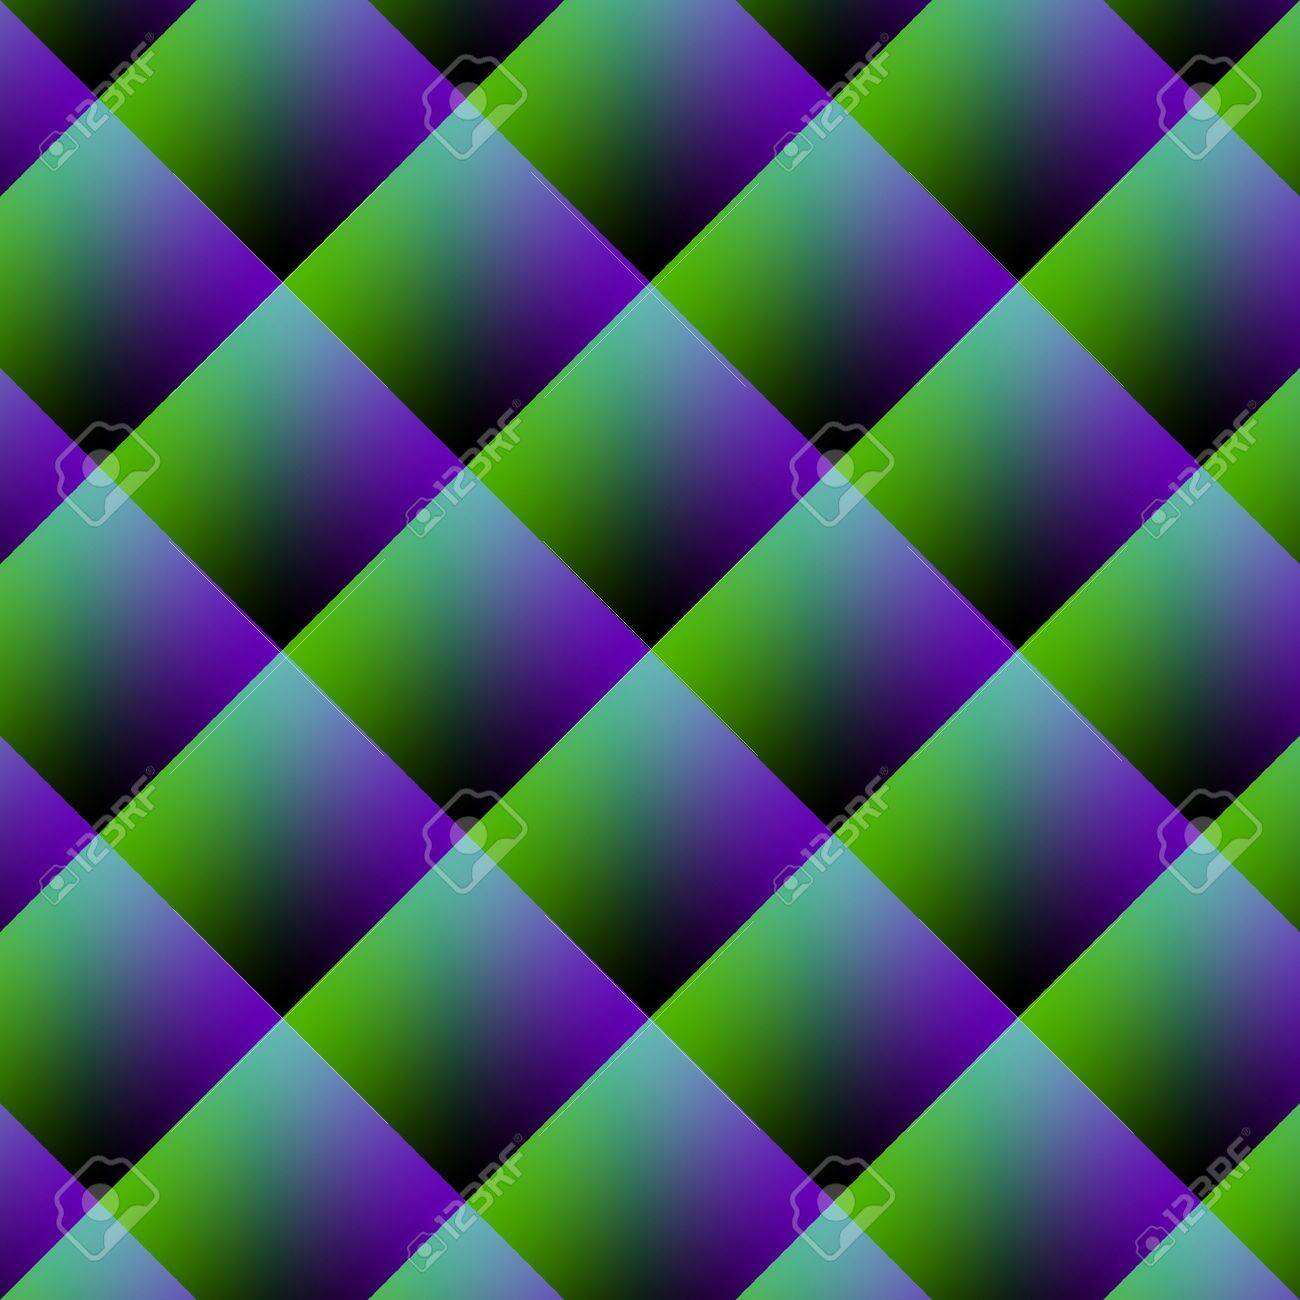 Abstract Purple And Green Backgrounds